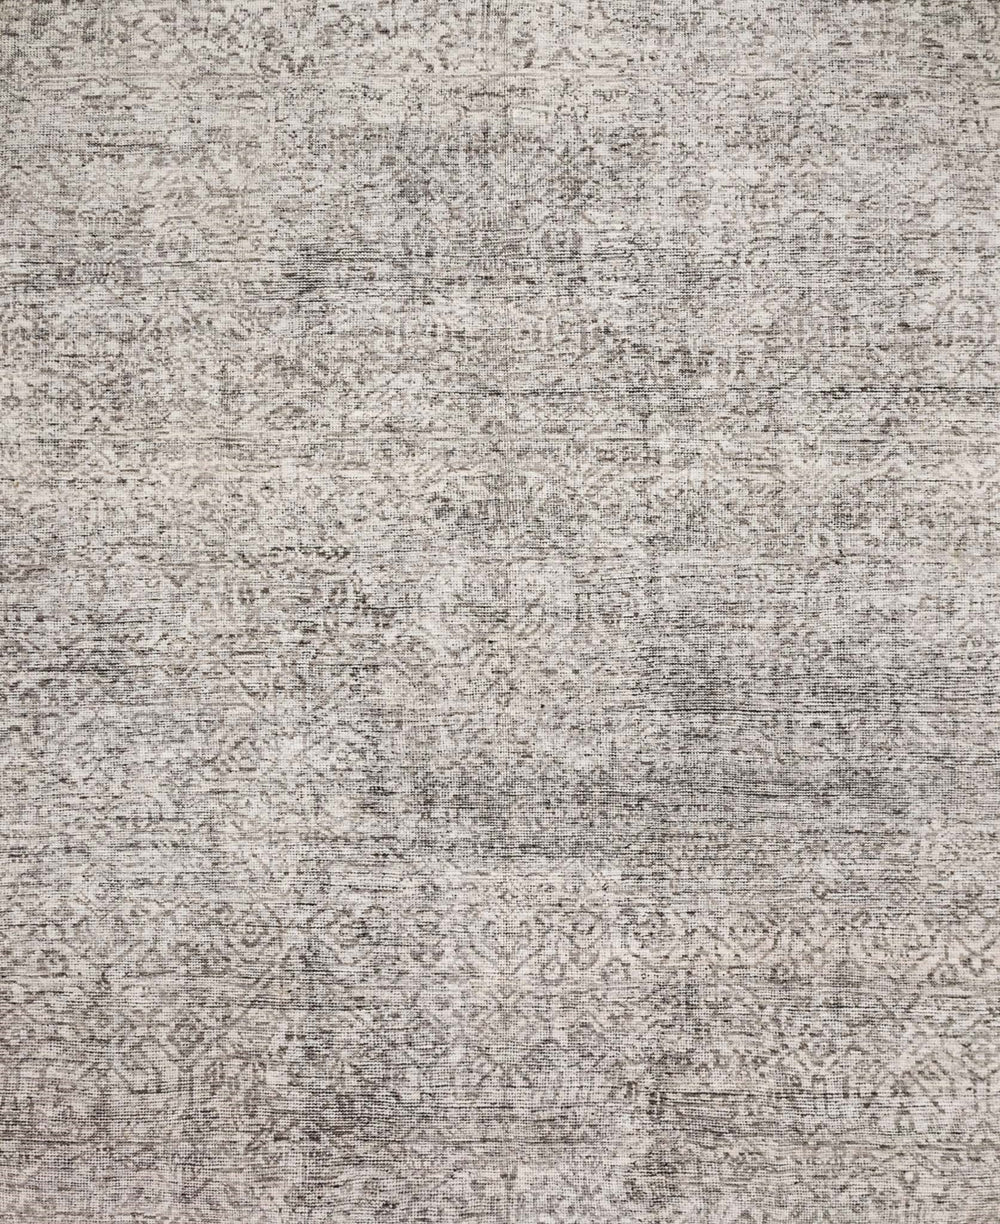 Hand-knotted in India of 100% wool, the Amara Collection creates a casual yet refined vibe with high-end appeal.  Hand Knotted 100% Wool AMM-04 Ivory/Taupe